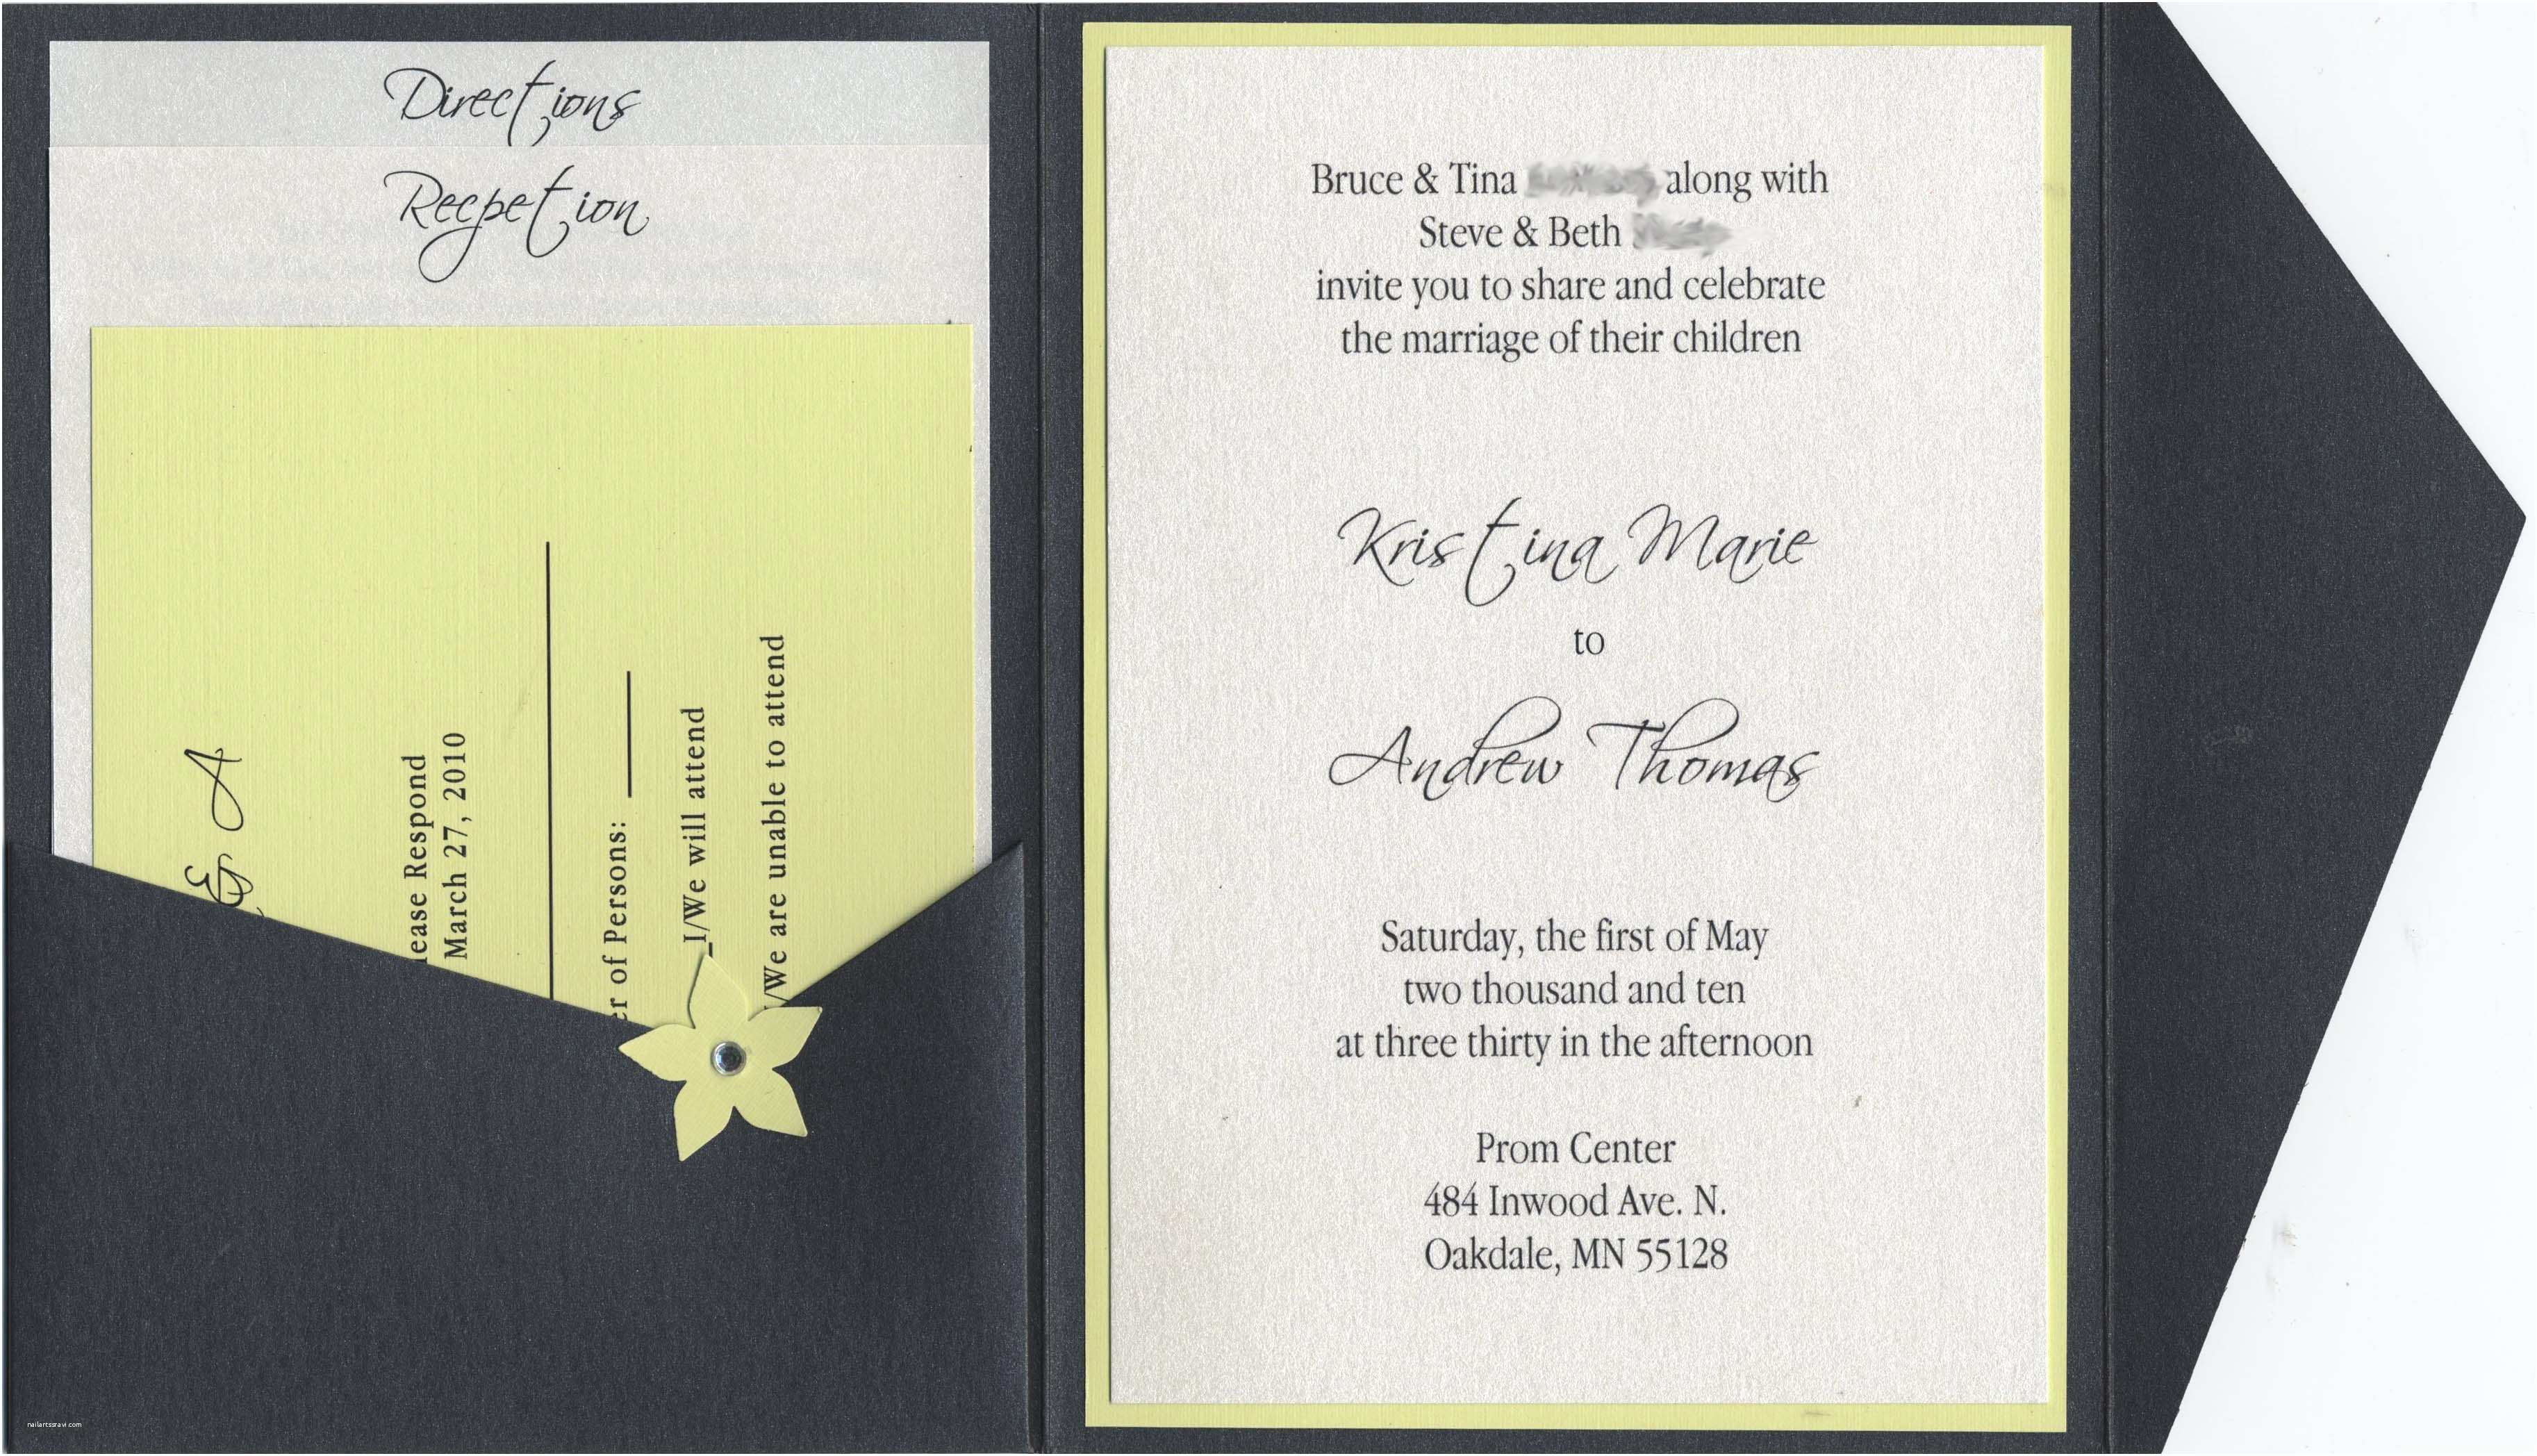 Wedding Invitation Maker with Photo Cards Ideas with How to Make Wedding Invitations at Home